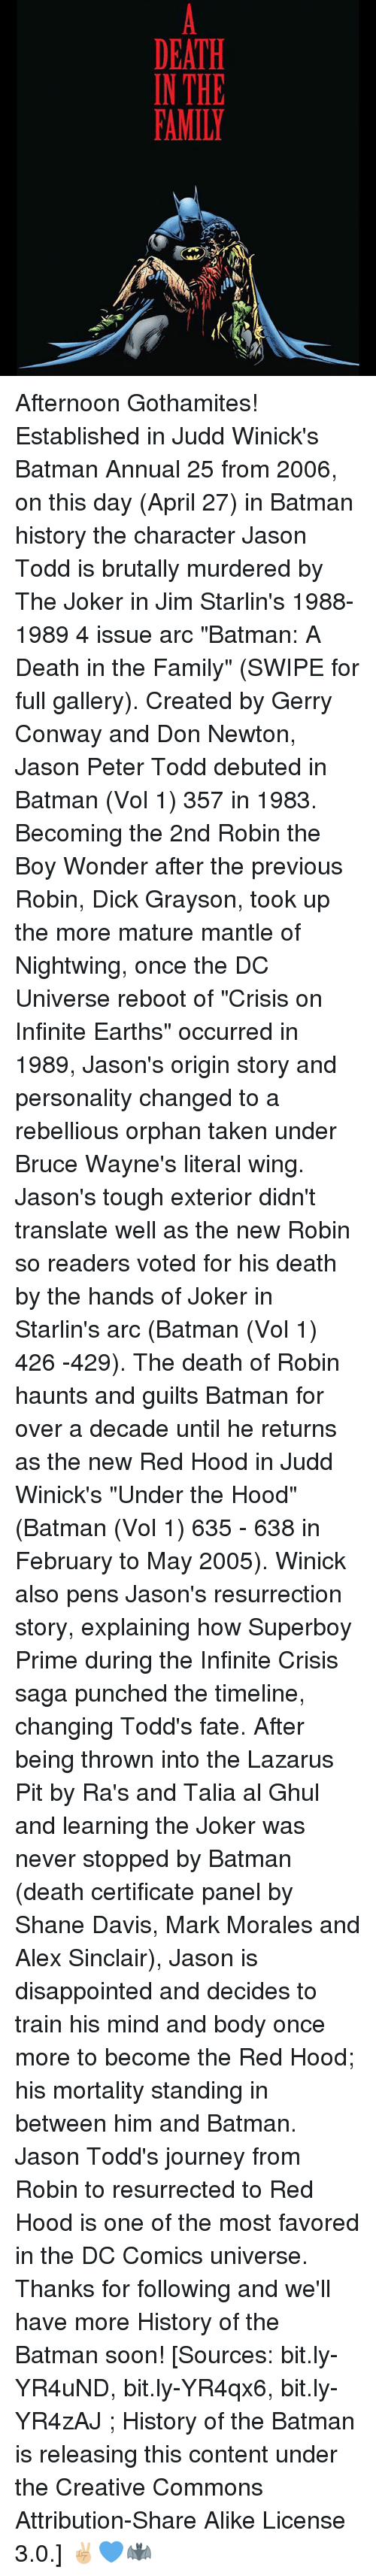 """Batman, Conway, and Disappointed: DEATH  IN THE  FAMILY Afternoon Gothamites! Established in Judd Winick's Batman Annual 25 from 2006, on this day (April 27) in Batman history the character Jason Todd is brutally murdered by The Joker in Jim Starlin's 1988-1989 4 issue arc """"Batman: A Death in the Family"""" (SWIPE for full gallery). Created by Gerry Conway and Don Newton, Jason Peter Todd debuted in Batman (Vol 1) 357 in 1983. Becoming the 2nd Robin the Boy Wonder after the previous Robin, Dick Grayson, took up the more mature mantle of Nightwing, once the DC Universe reboot of """"Crisis on Infinite Earths"""" occurred in 1989, Jason's origin story and personality changed to a rebellious orphan taken under Bruce Wayne's literal wing. Jason's tough exterior didn't translate well as the new Robin so readers voted for his death by the hands of Joker in Starlin's arc (Batman (Vol 1) 426 -429). The death of Robin haunts and guilts Batman for over a decade until he returns as the new Red Hood in Judd Winick's """"Under the Hood"""" (Batman (Vol 1) 635 - 638 in February to May 2005). Winick also pens Jason's resurrection story, explaining how Superboy Prime during the Infinite Crisis saga punched the timeline, changing Todd's fate. After being thrown into the Lazarus Pit by Ra's and Talia al Ghul and learning the Joker was never stopped by Batman (death certificate panel by Shane Davis, Mark Morales and Alex Sinclair), Jason is disappointed and decides to train his mind and body once more to become the Red Hood; his mortality standing in between him and Batman. Jason Todd's journey from Robin to resurrected to Red Hood is one of the most favored in the DC Comics universe. Thanks for following and we'll have more History of the Batman soon! [Sources: bit.ly-YR4uND, bit.ly-YR4qx6, bit.ly-YR4zAJ ; History of the Batman is releasing this content under the Creative Commons Attribution-Share Alike License 3.0.] ✌🏼💙🦇"""